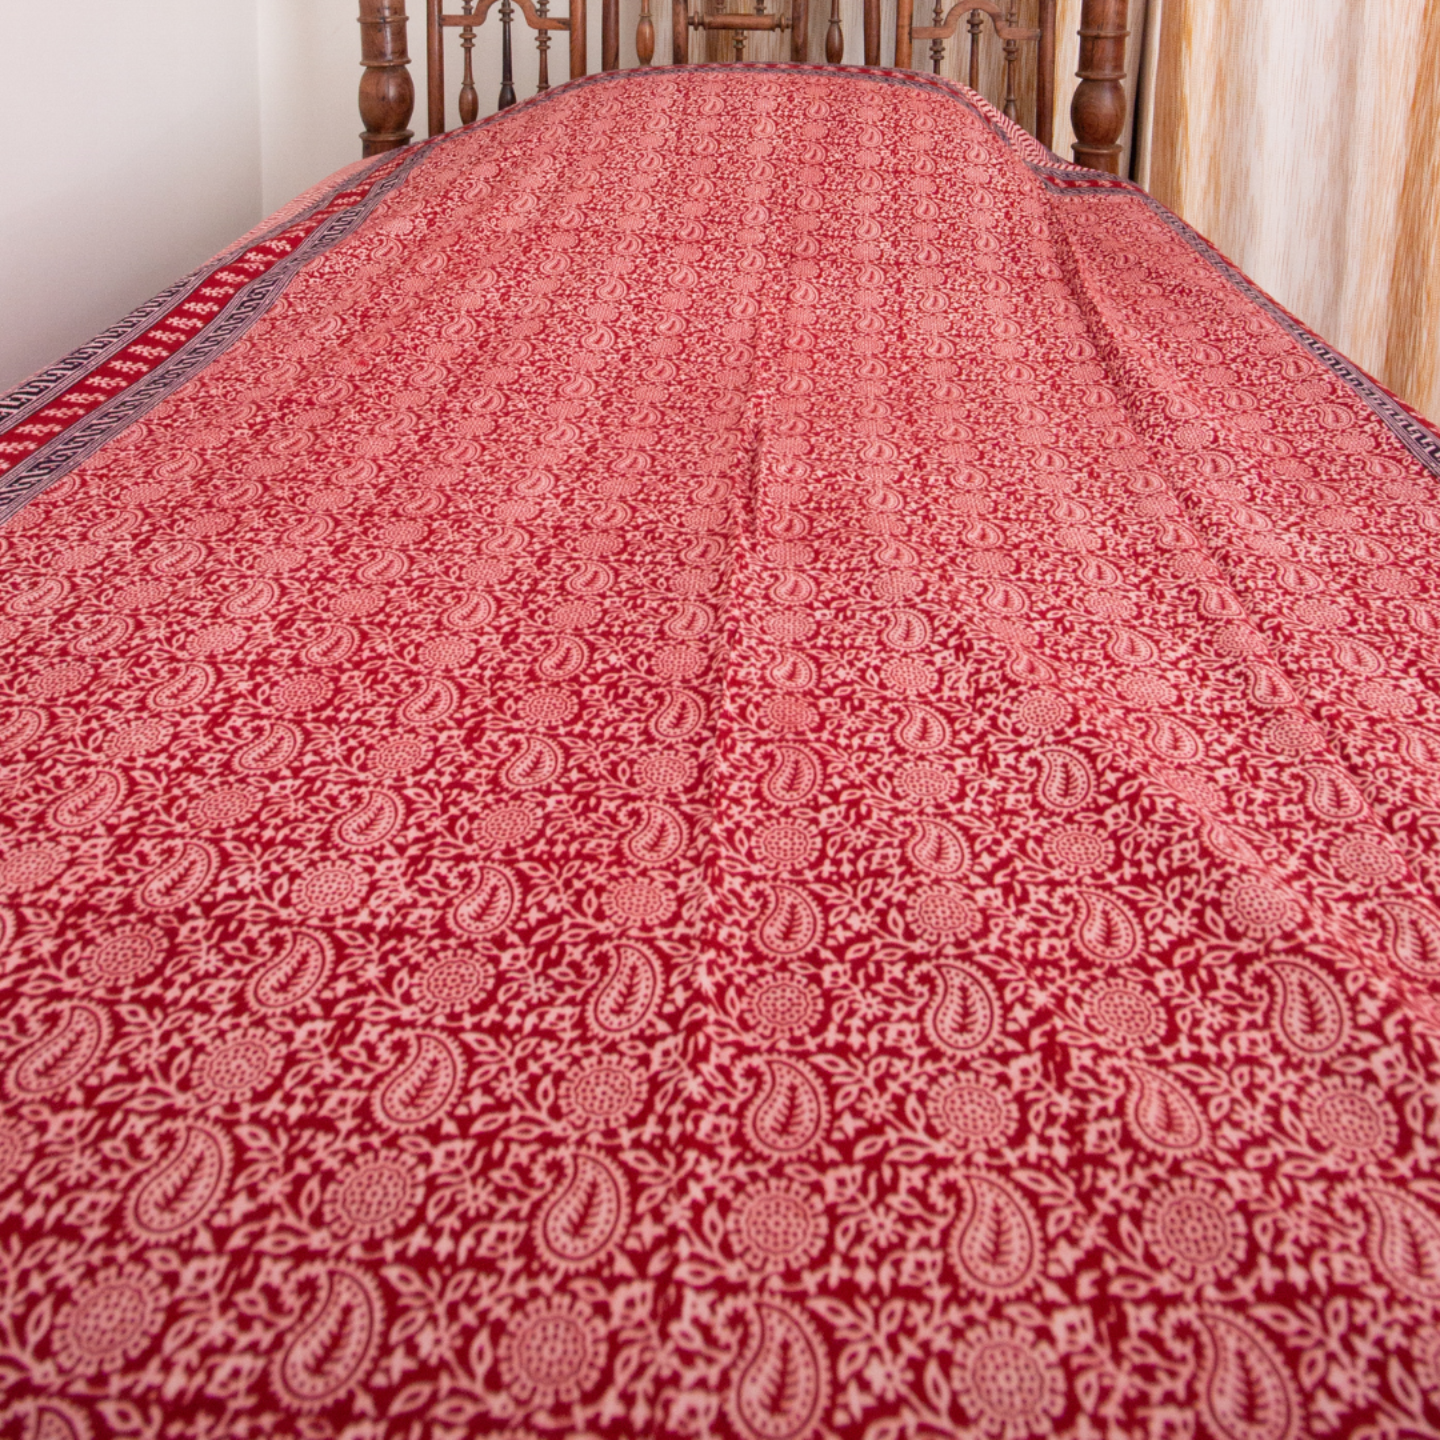 Bed cover - Bagh Print